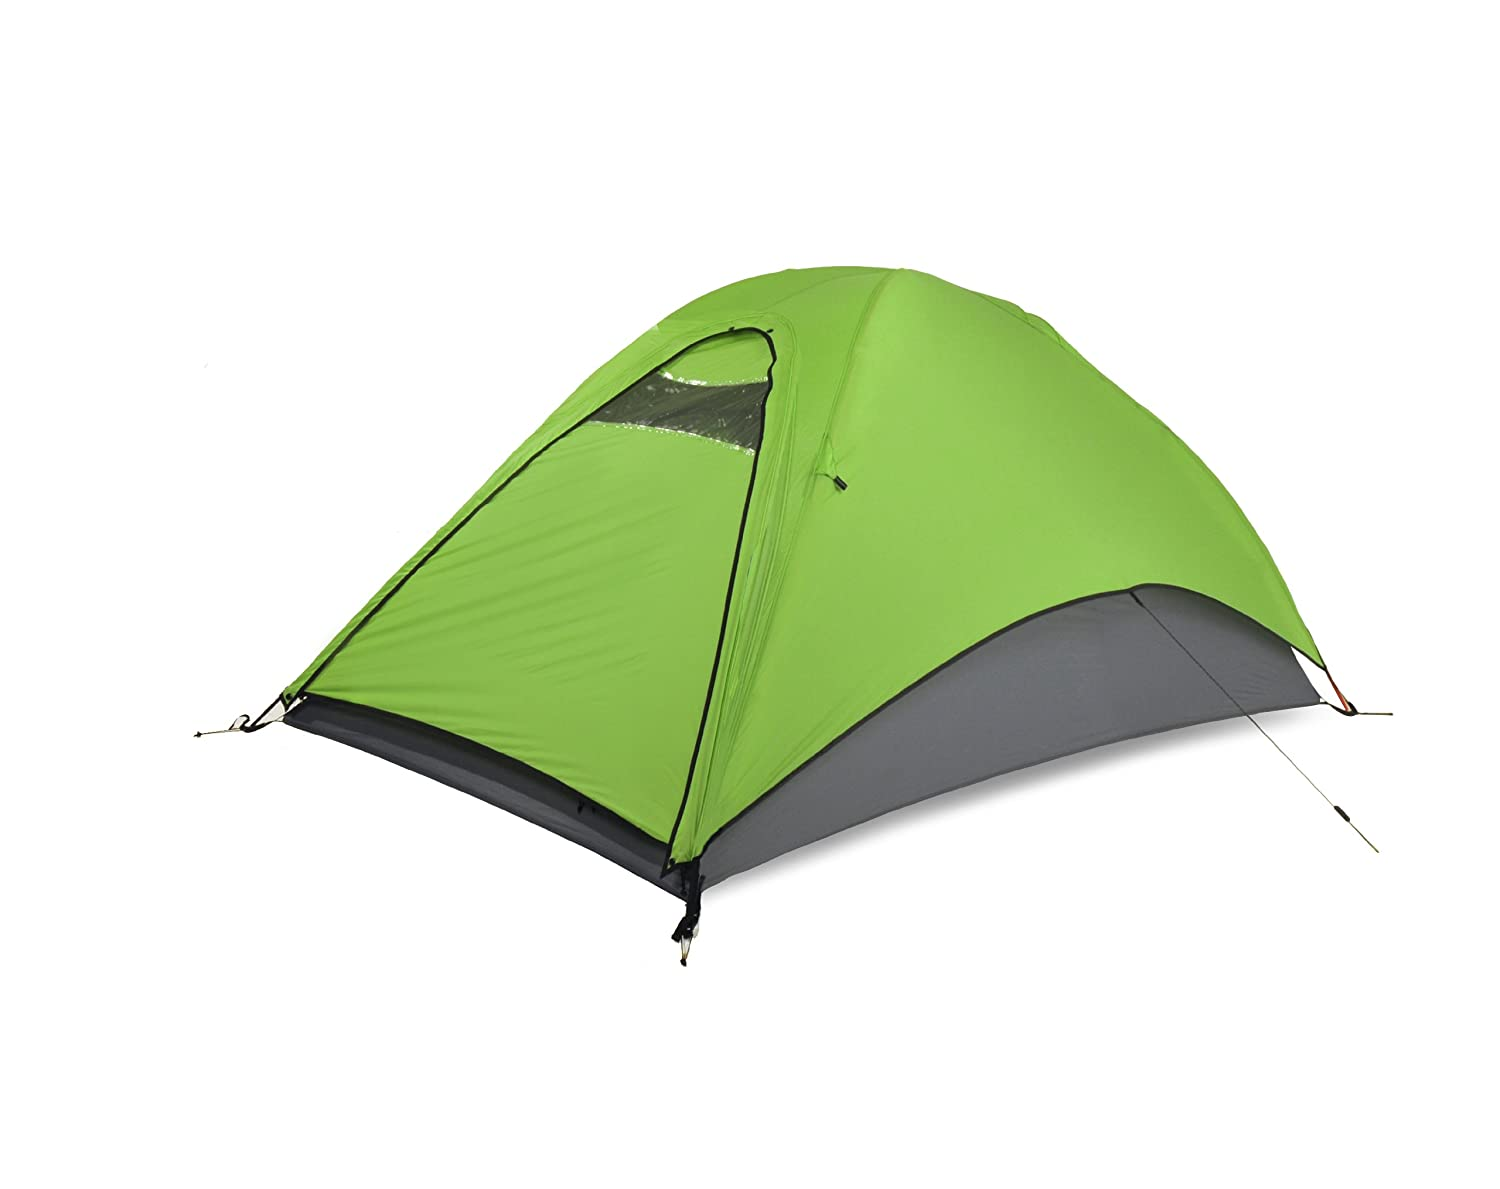 Amazon.com  Nemo Equipment Espri Ultralight Backpacking Tent  Sports u0026 Outdoors  sc 1 st  Amazon.com & Amazon.com : Nemo Equipment Espri Ultralight Backpacking Tent ...